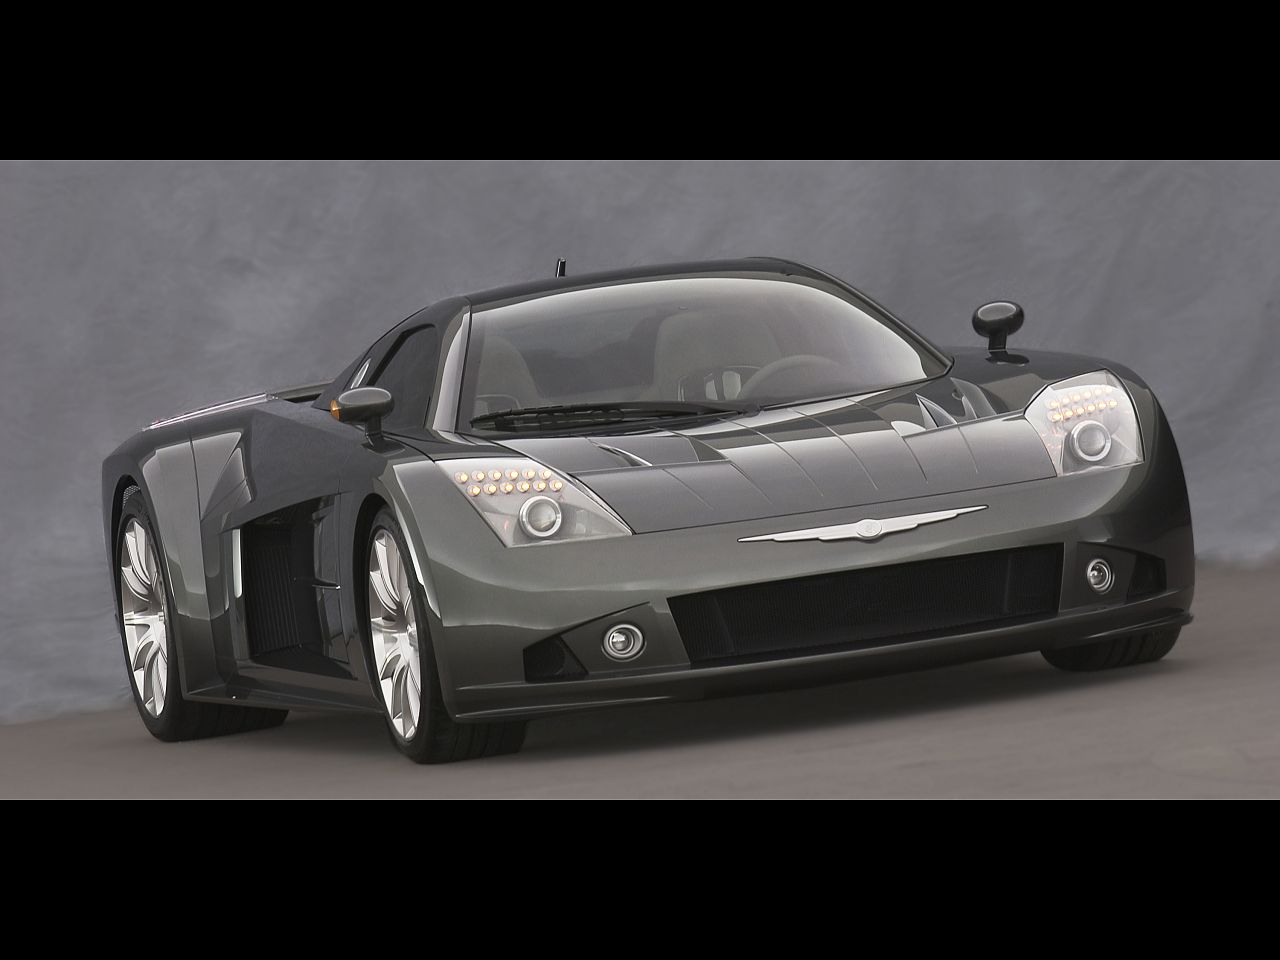 2005 Chrysler ME Four-Twelve Picture